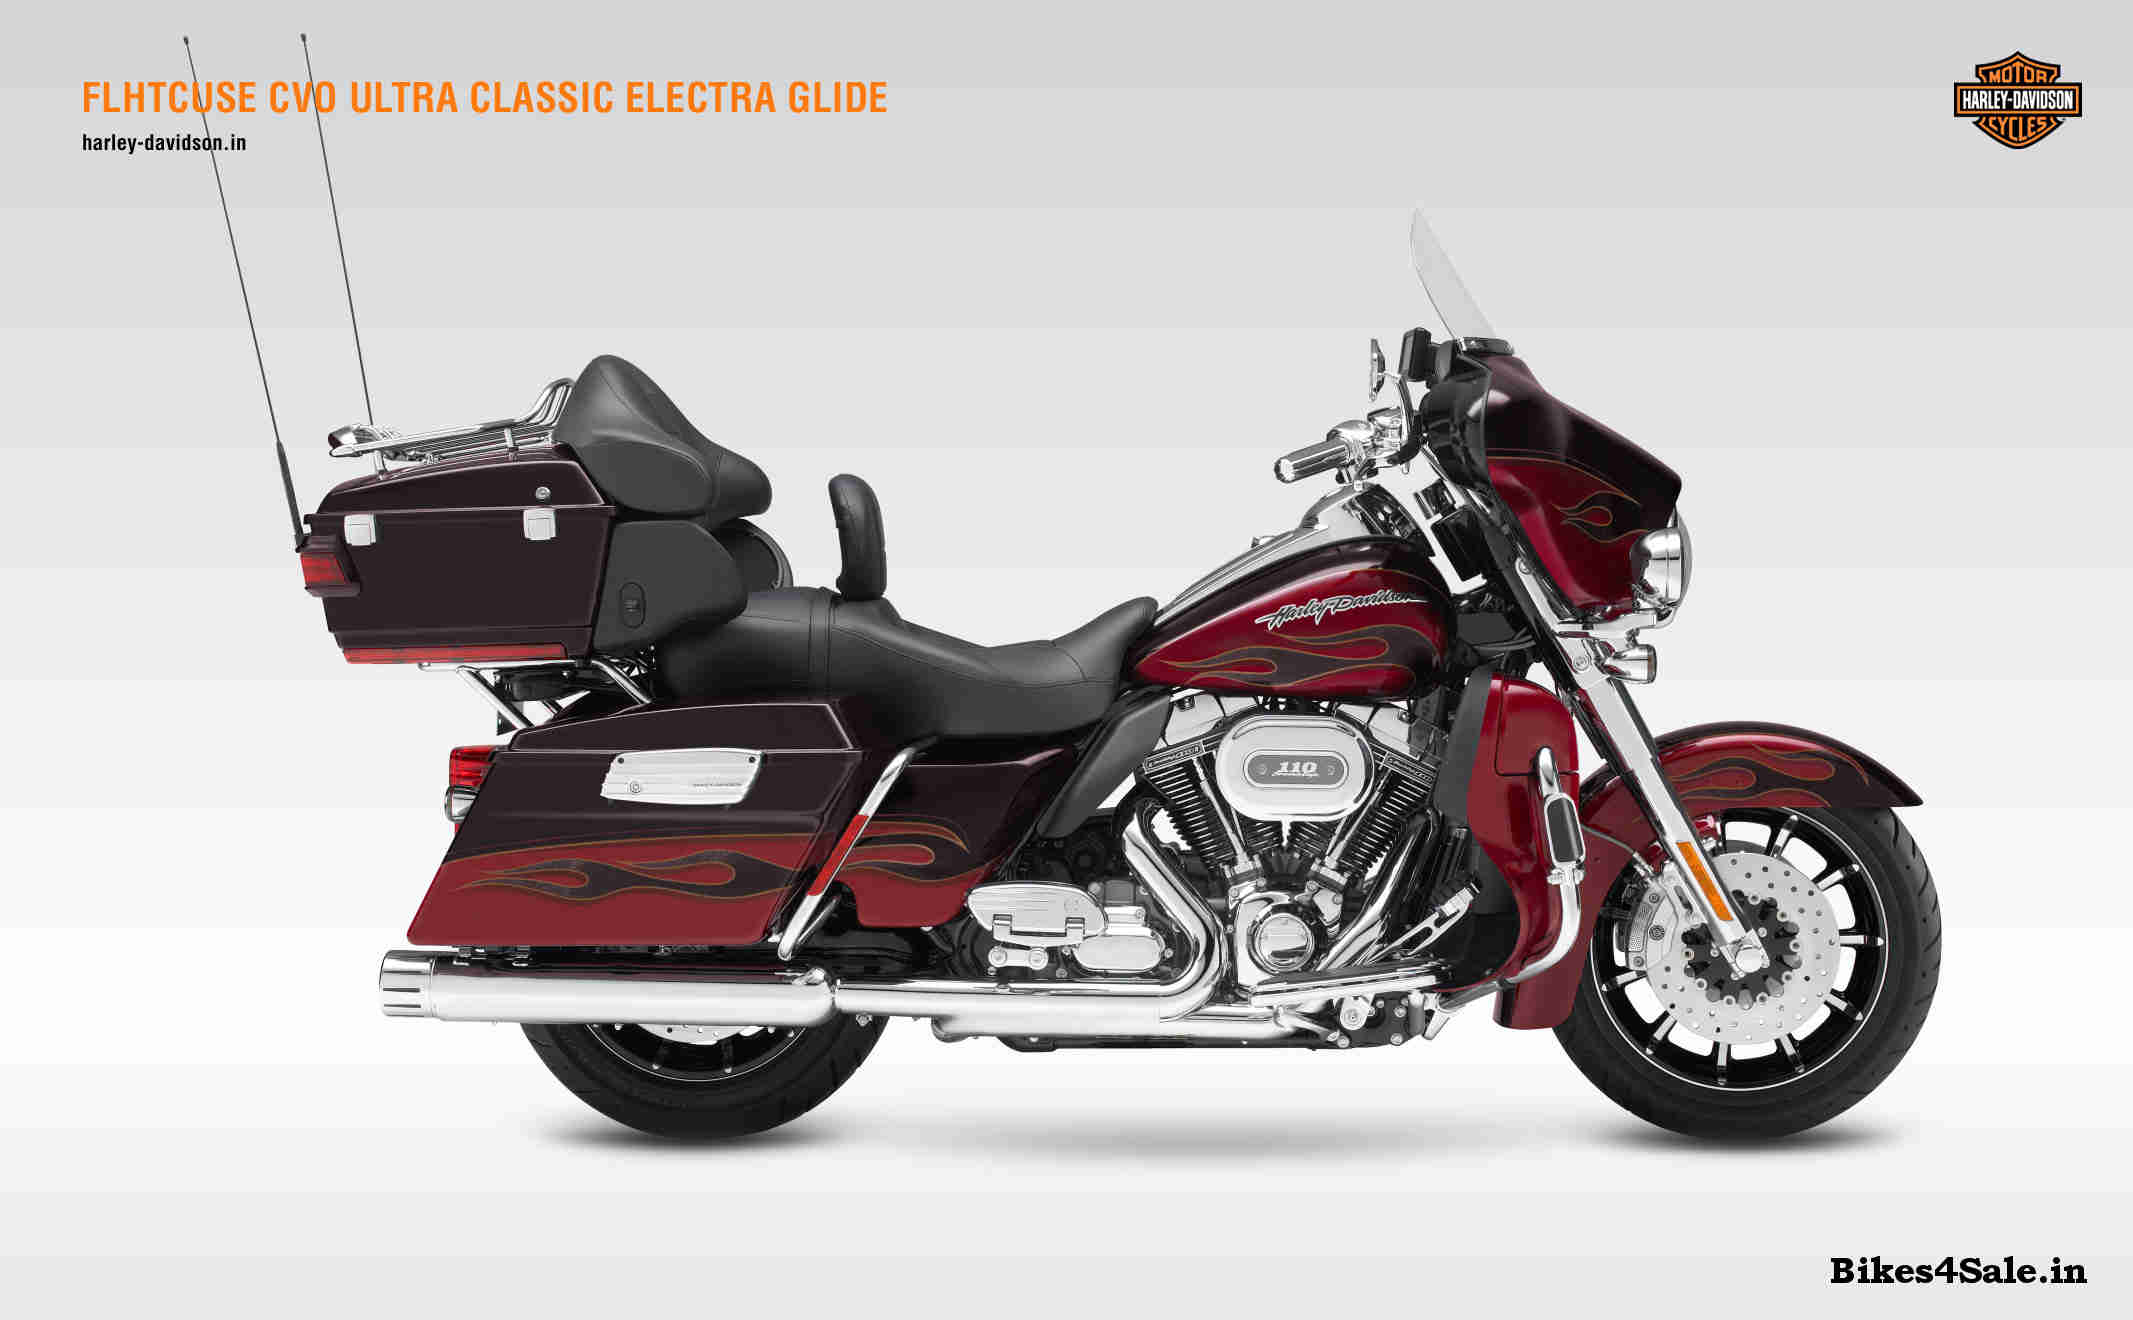 Harley Davidson FLHTCUSE Ultra Classic Electra Glide